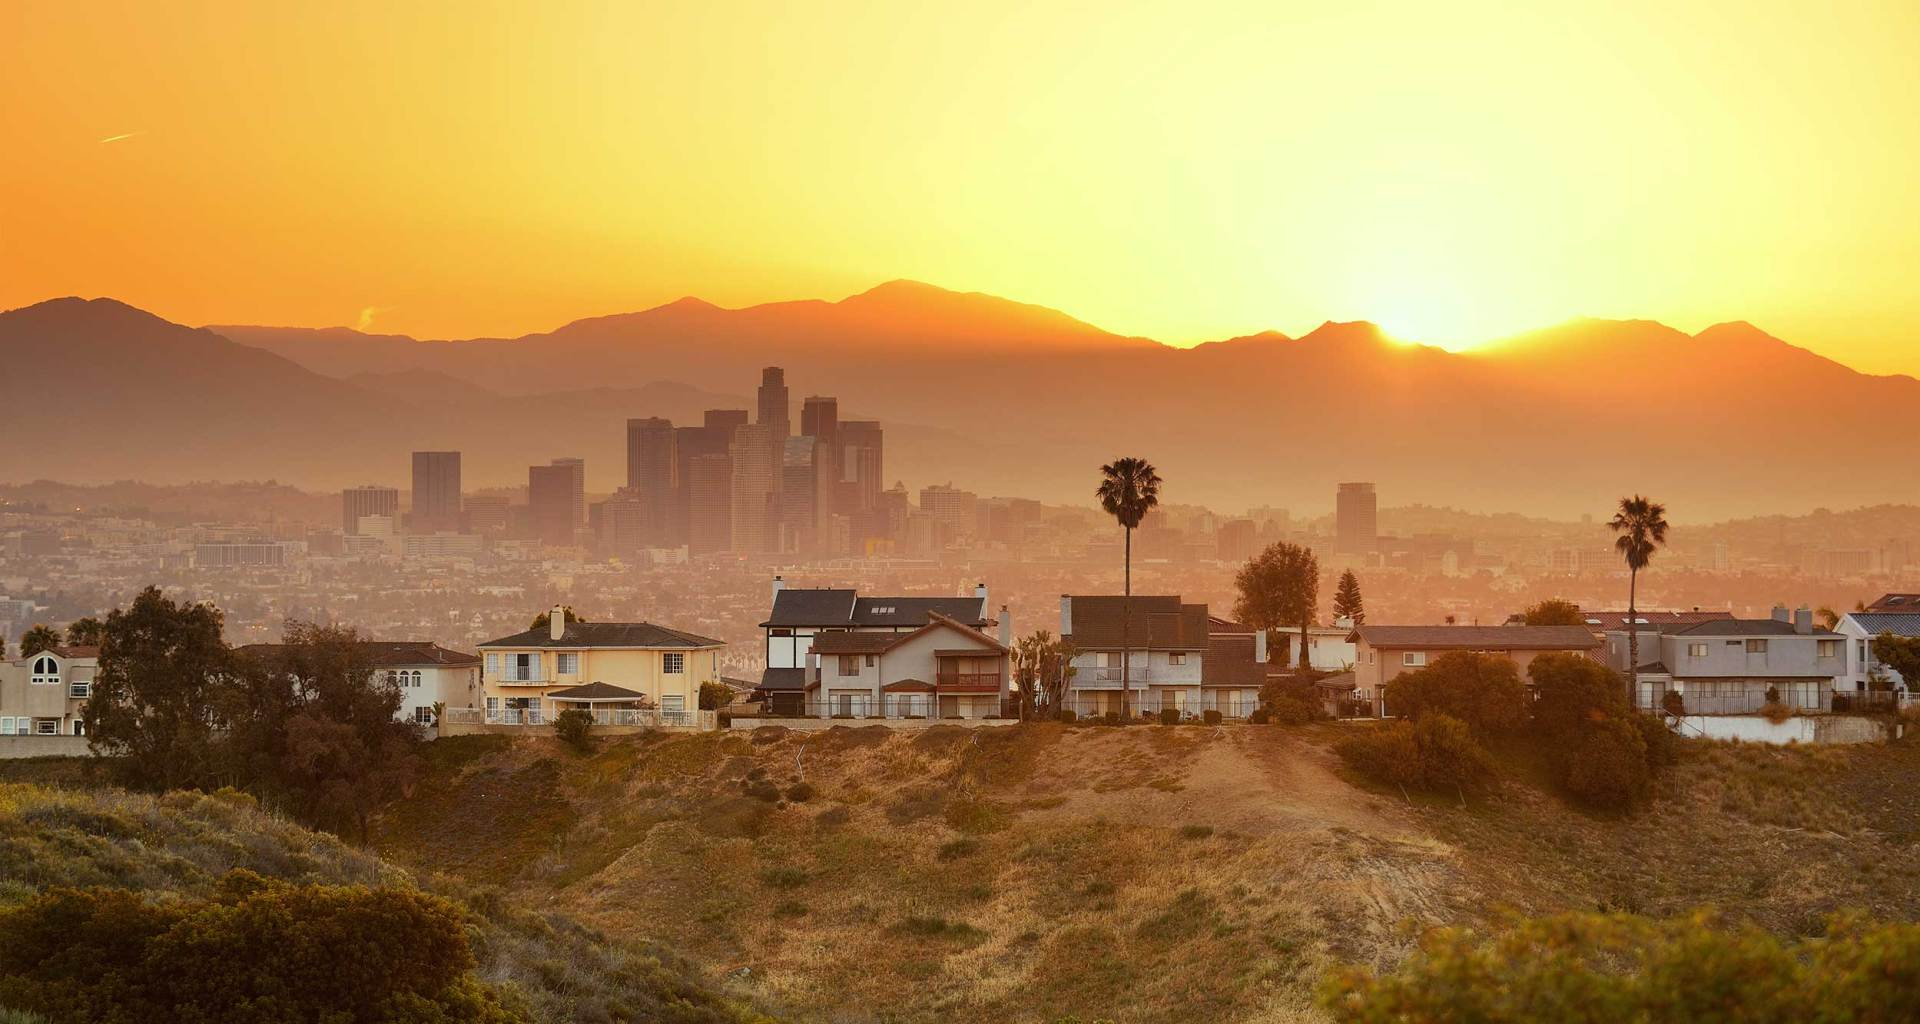 Los Angeles, California skyline.